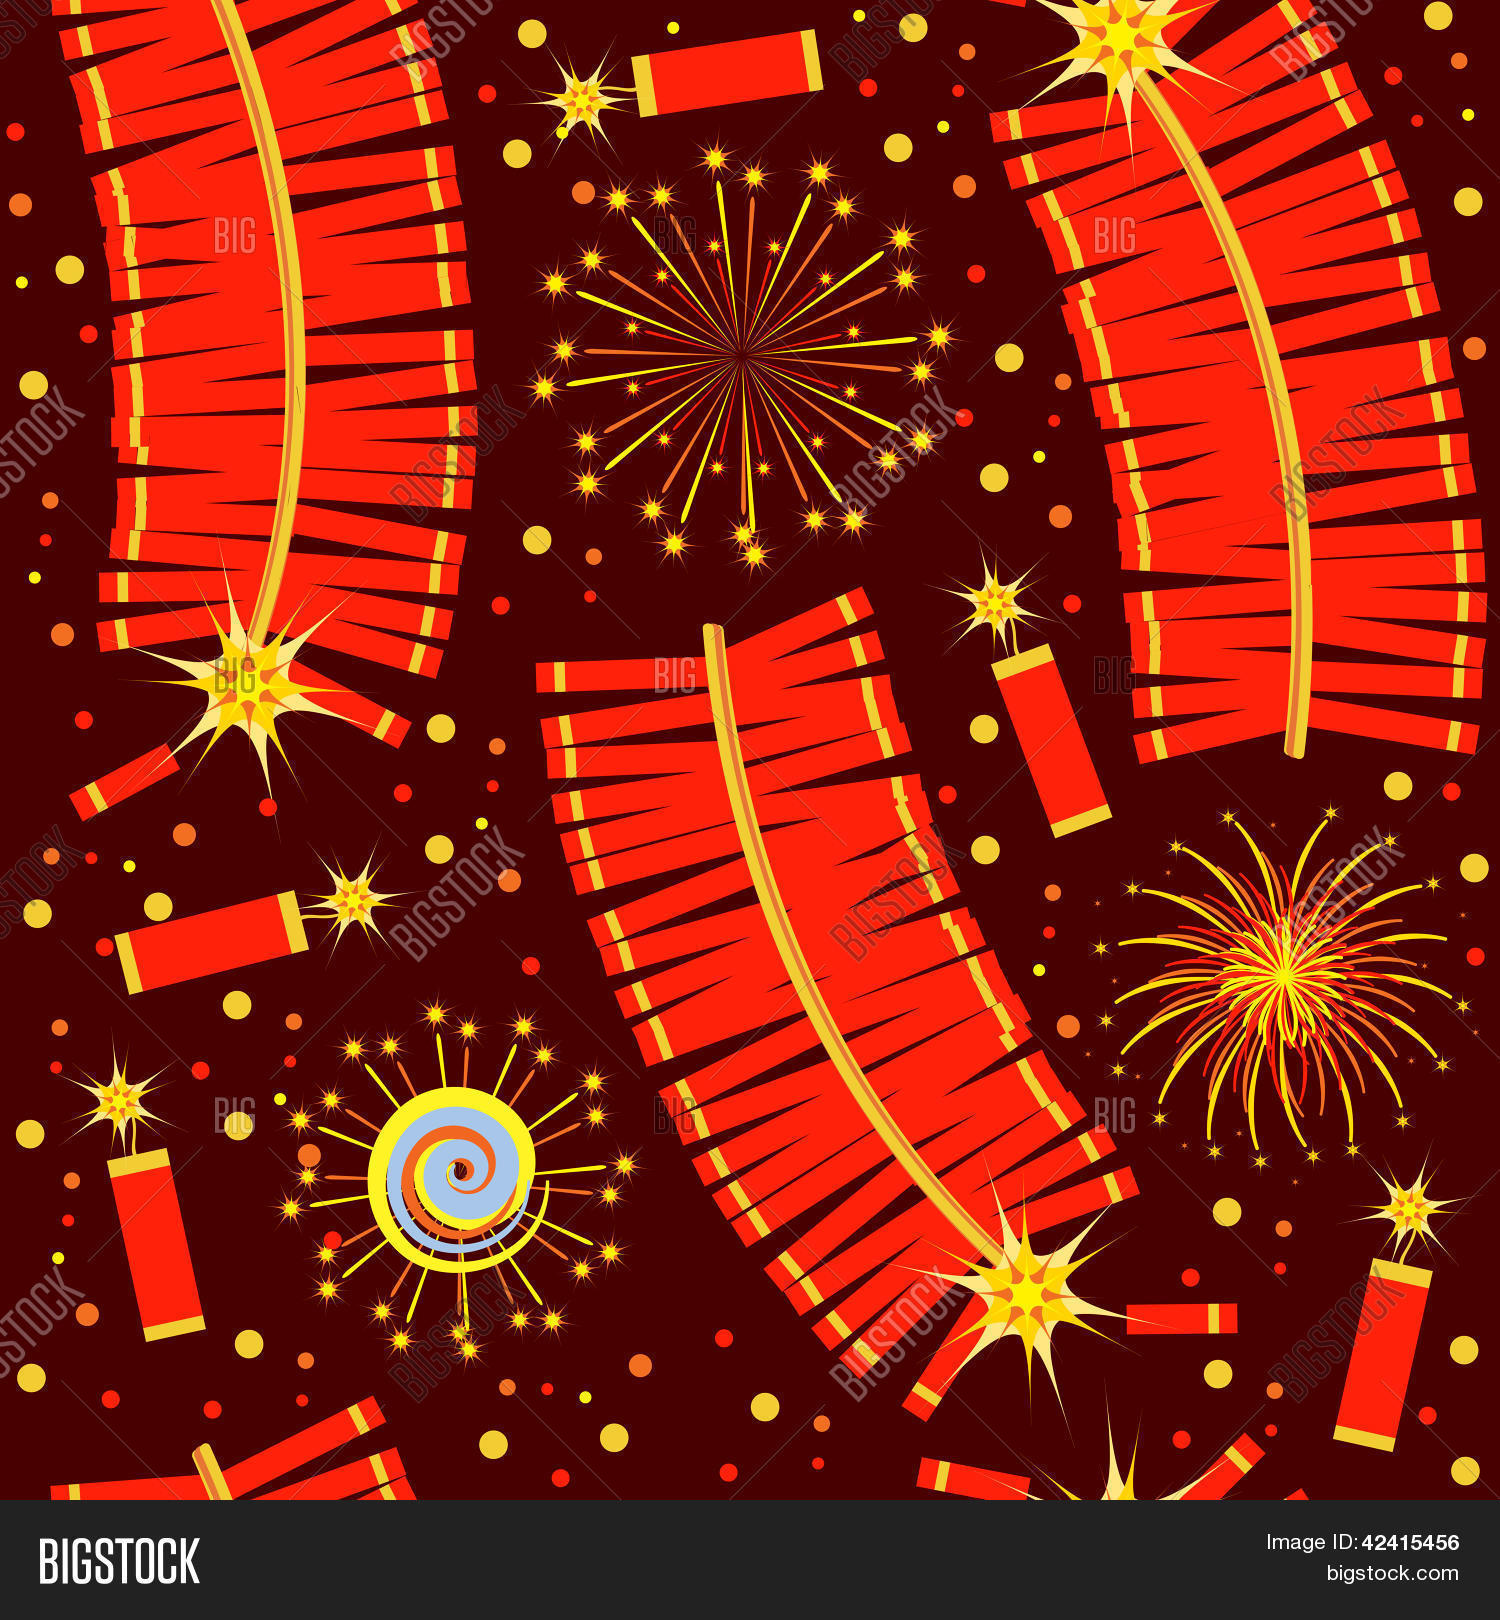 Chinese Fireworks Seamless Pattern Vector & Photo | Bigstock